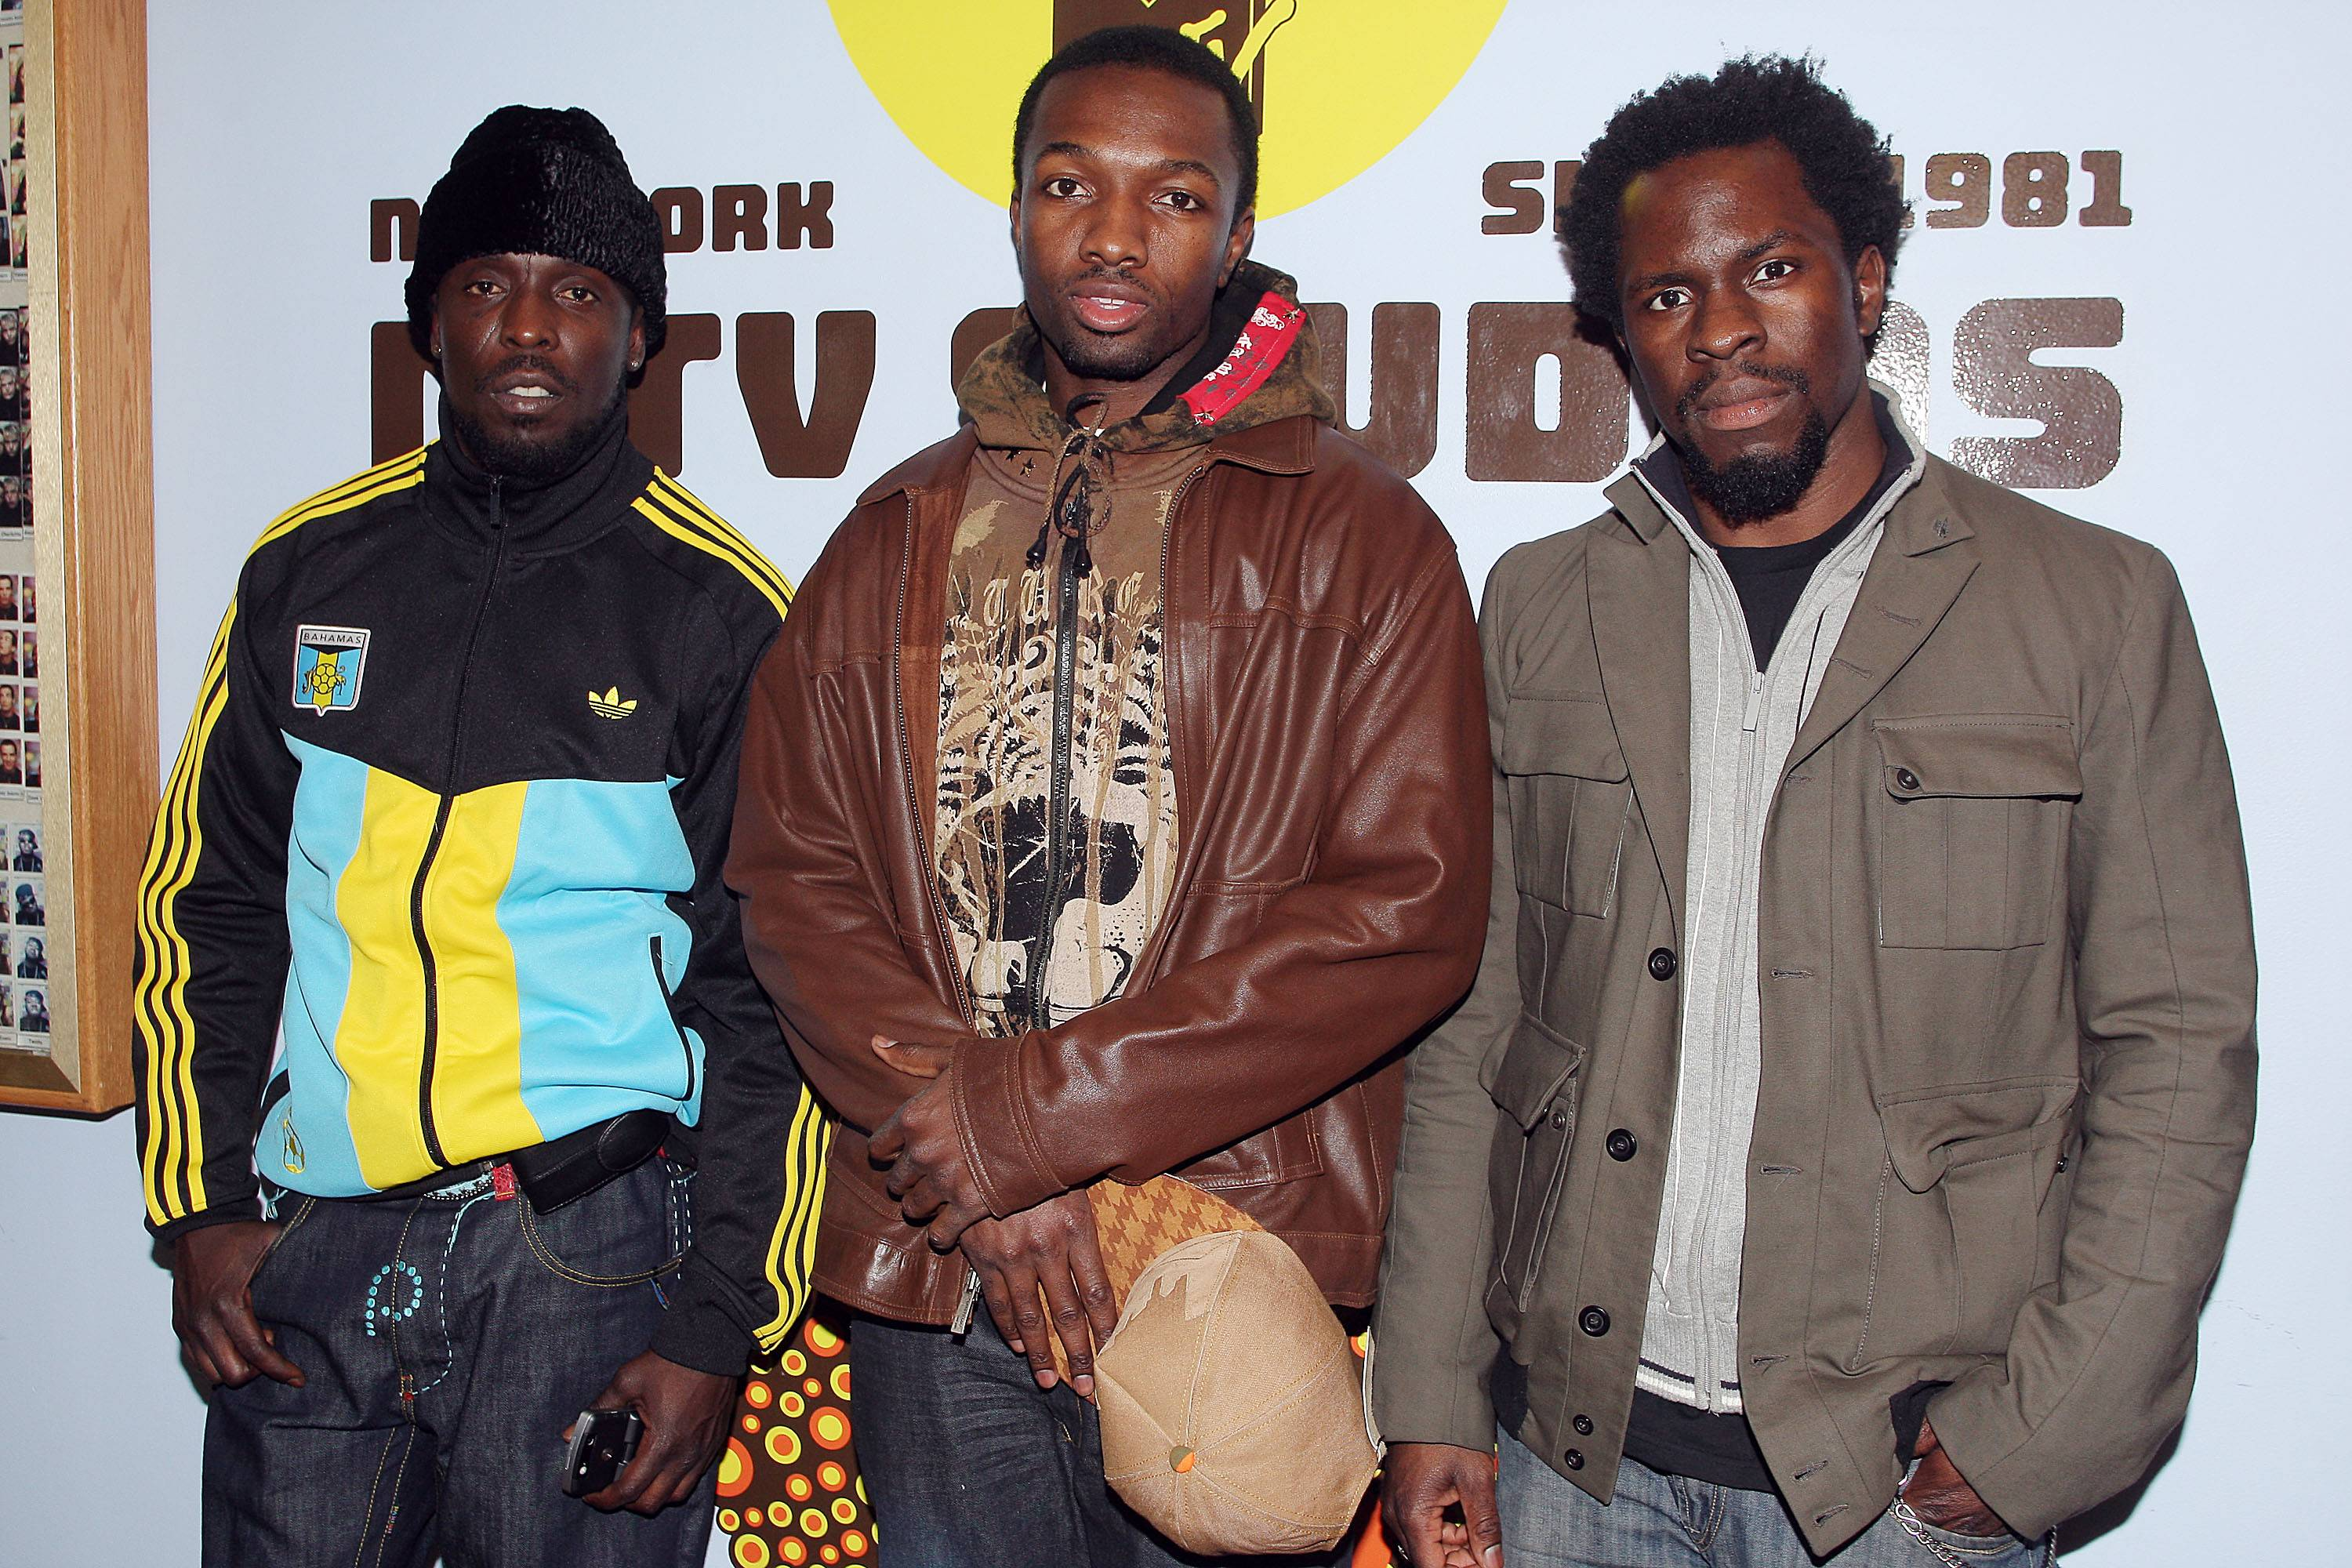 The Wire - In 2004, Akinnagbe joined the cast of HBO's The Wire, portraying Chris Partlow, an assassin affiliated with Marlo Stanfield. From left, he poses with fellow Wire cast members Michael K. Williams and Jamie Hector, respectively.(Photo by Scott Gries/Getty Images)